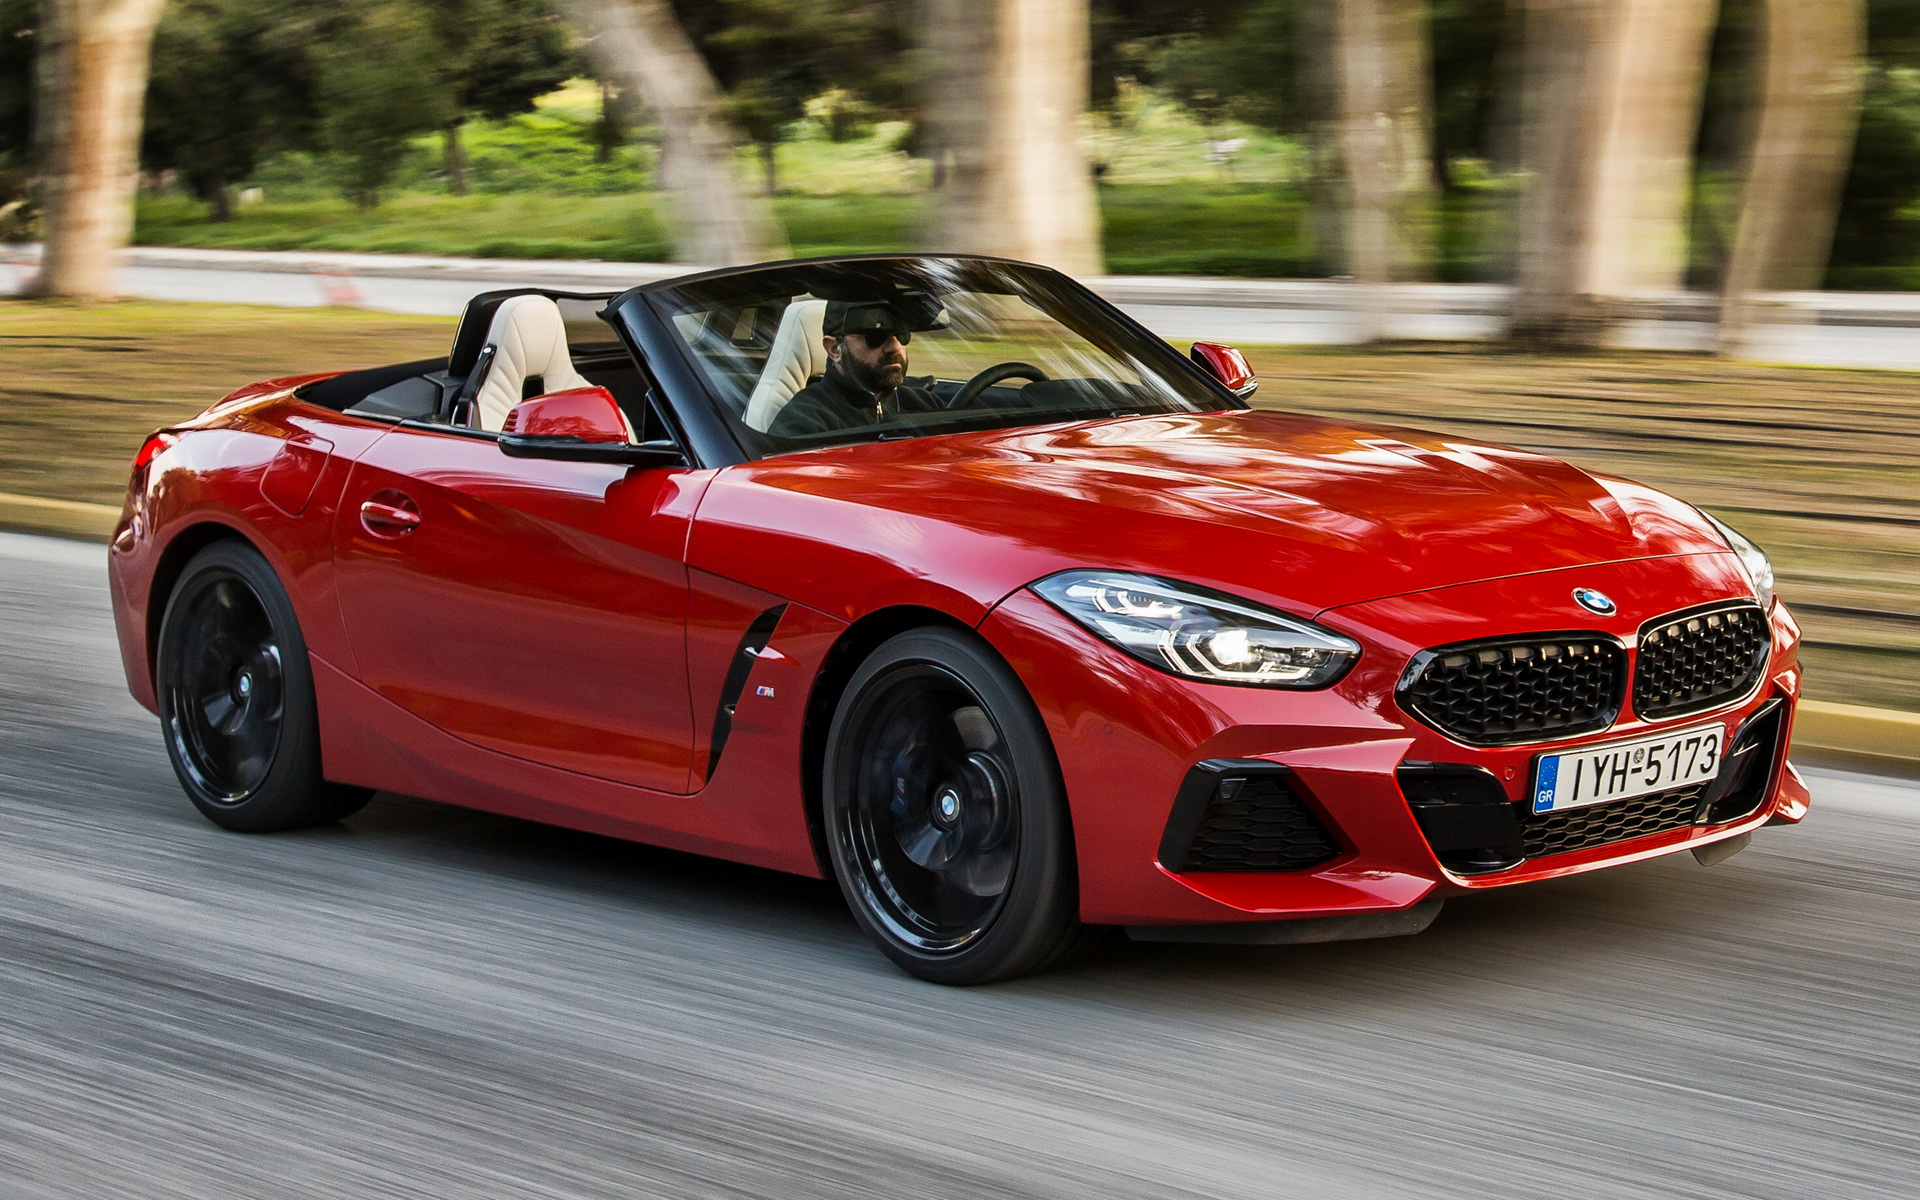 2019 Bmw Z4 M Sport Shadow Line Wallpapers And Hd Images